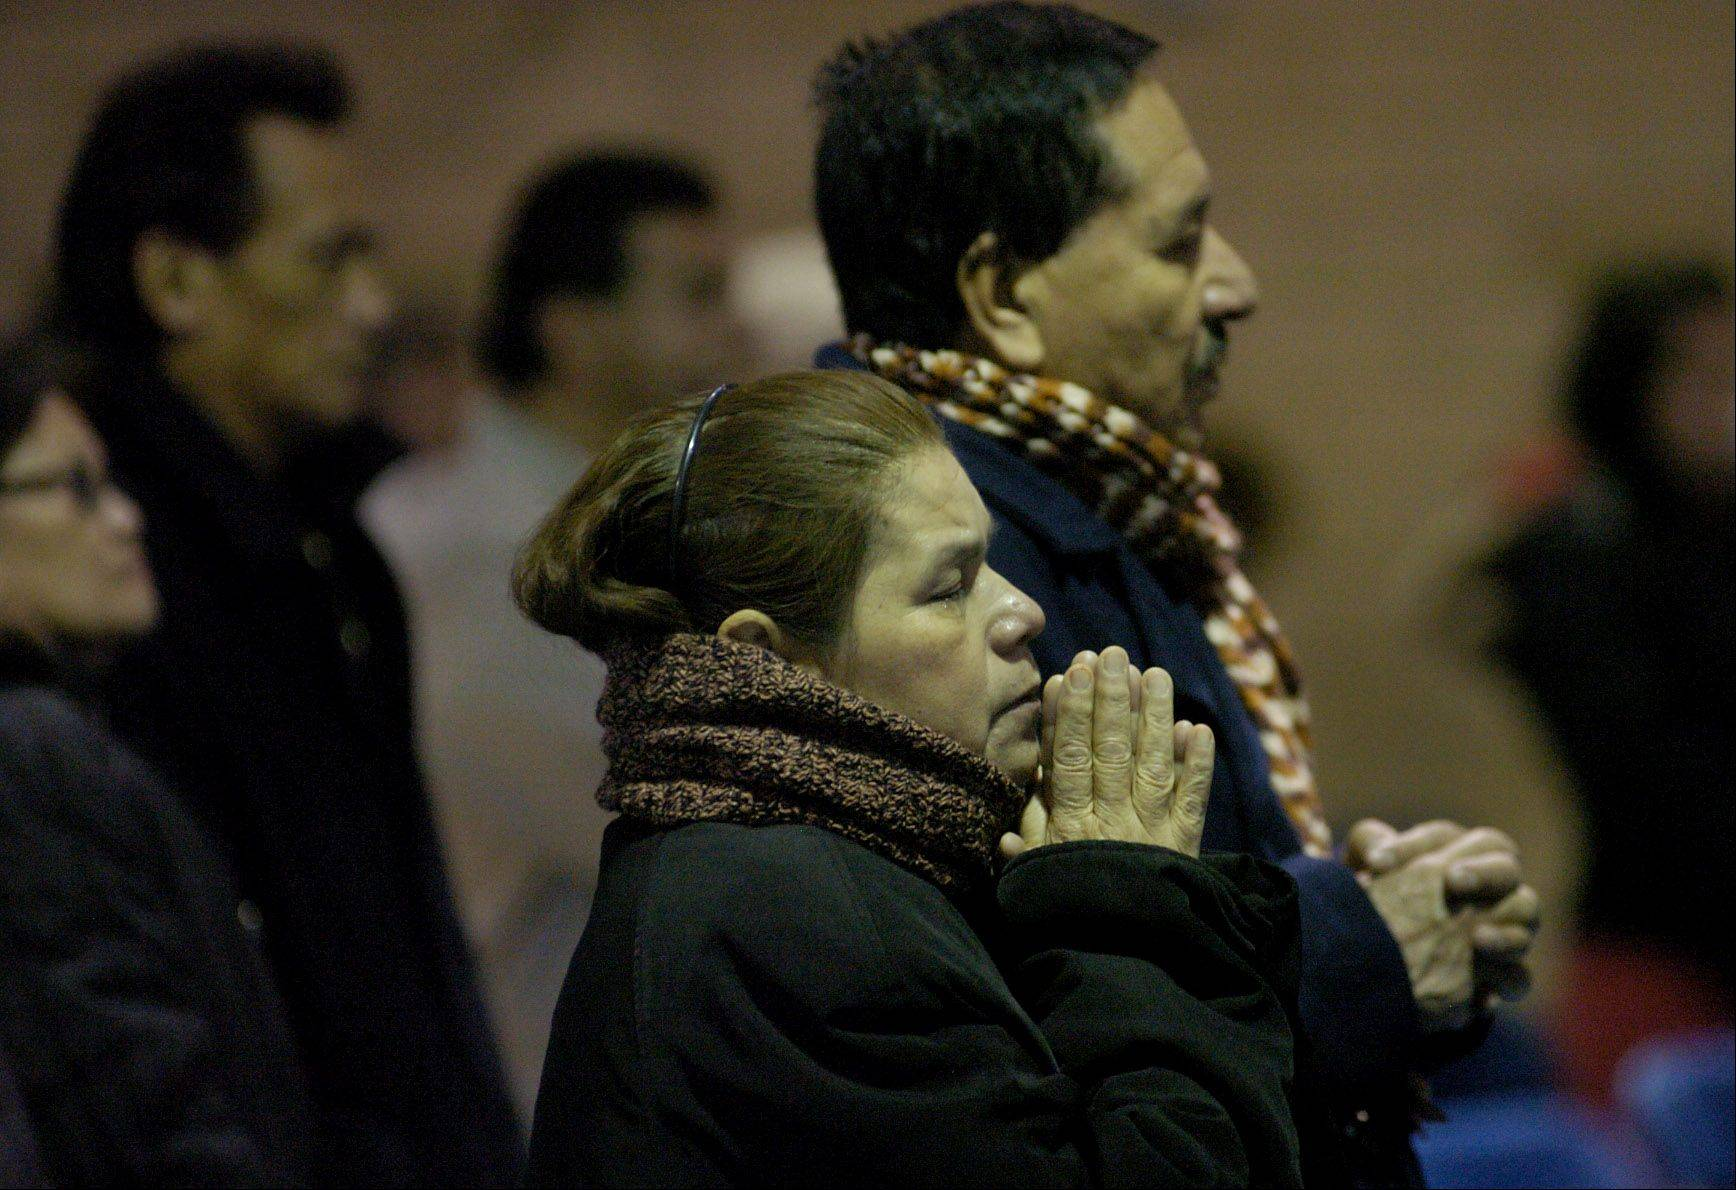 A woman prays during the 9 a.m. Mass at the Shrine of Our Lady of Guadalupe in Des Plaines.